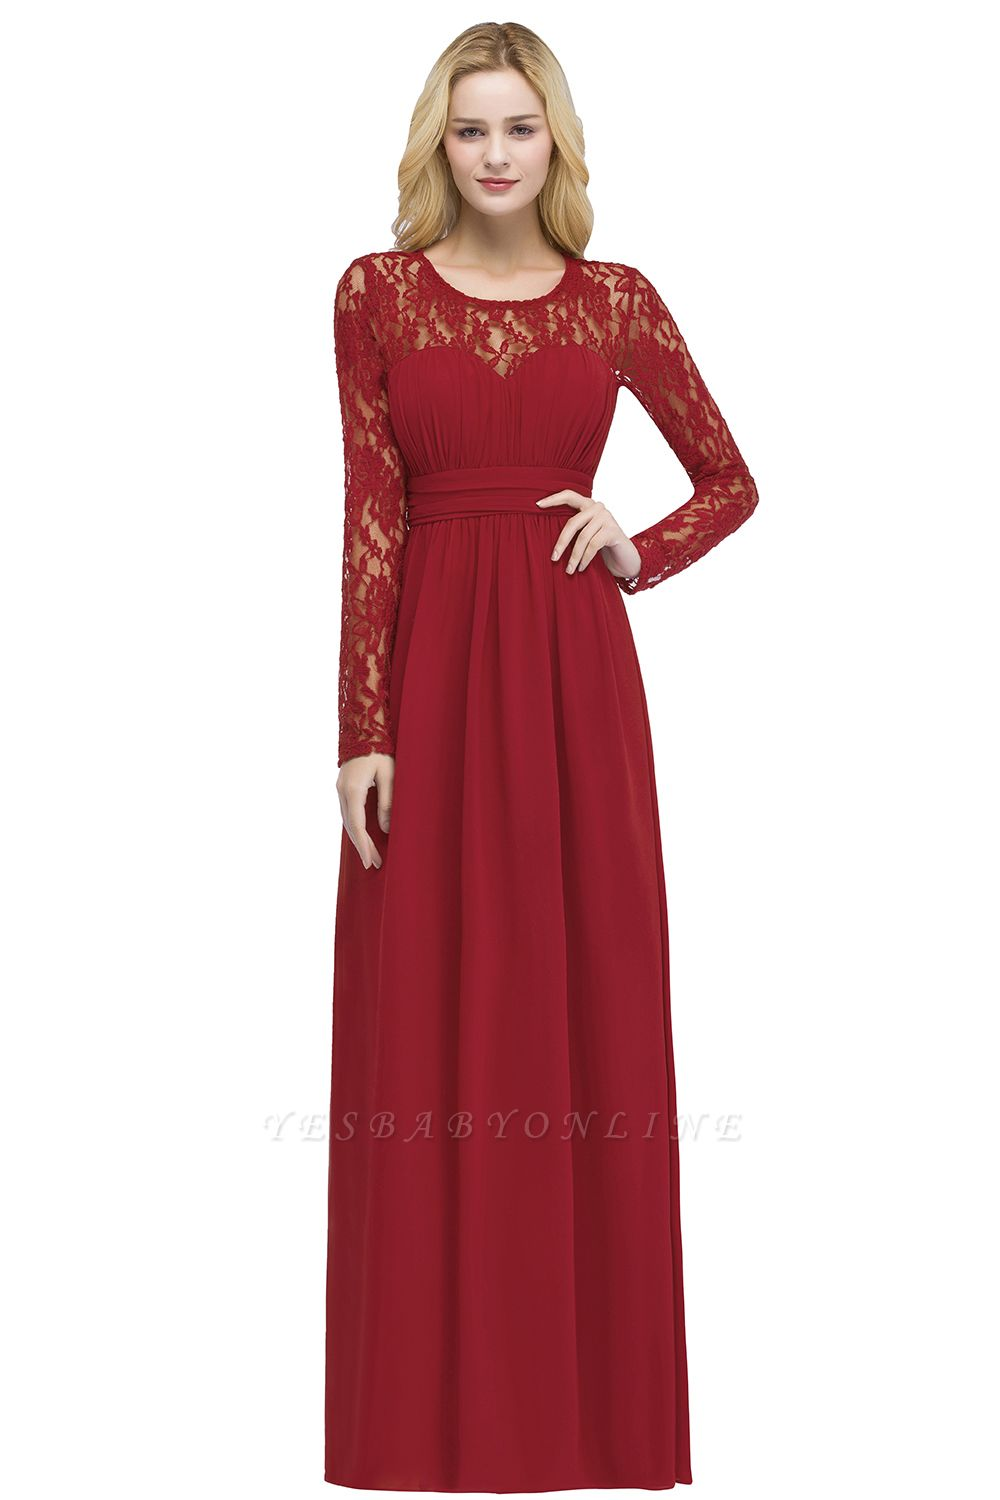 ROSALIE | A-line Floor Length Long Sleeves Lace Chiffon Bridesmaid Dresses